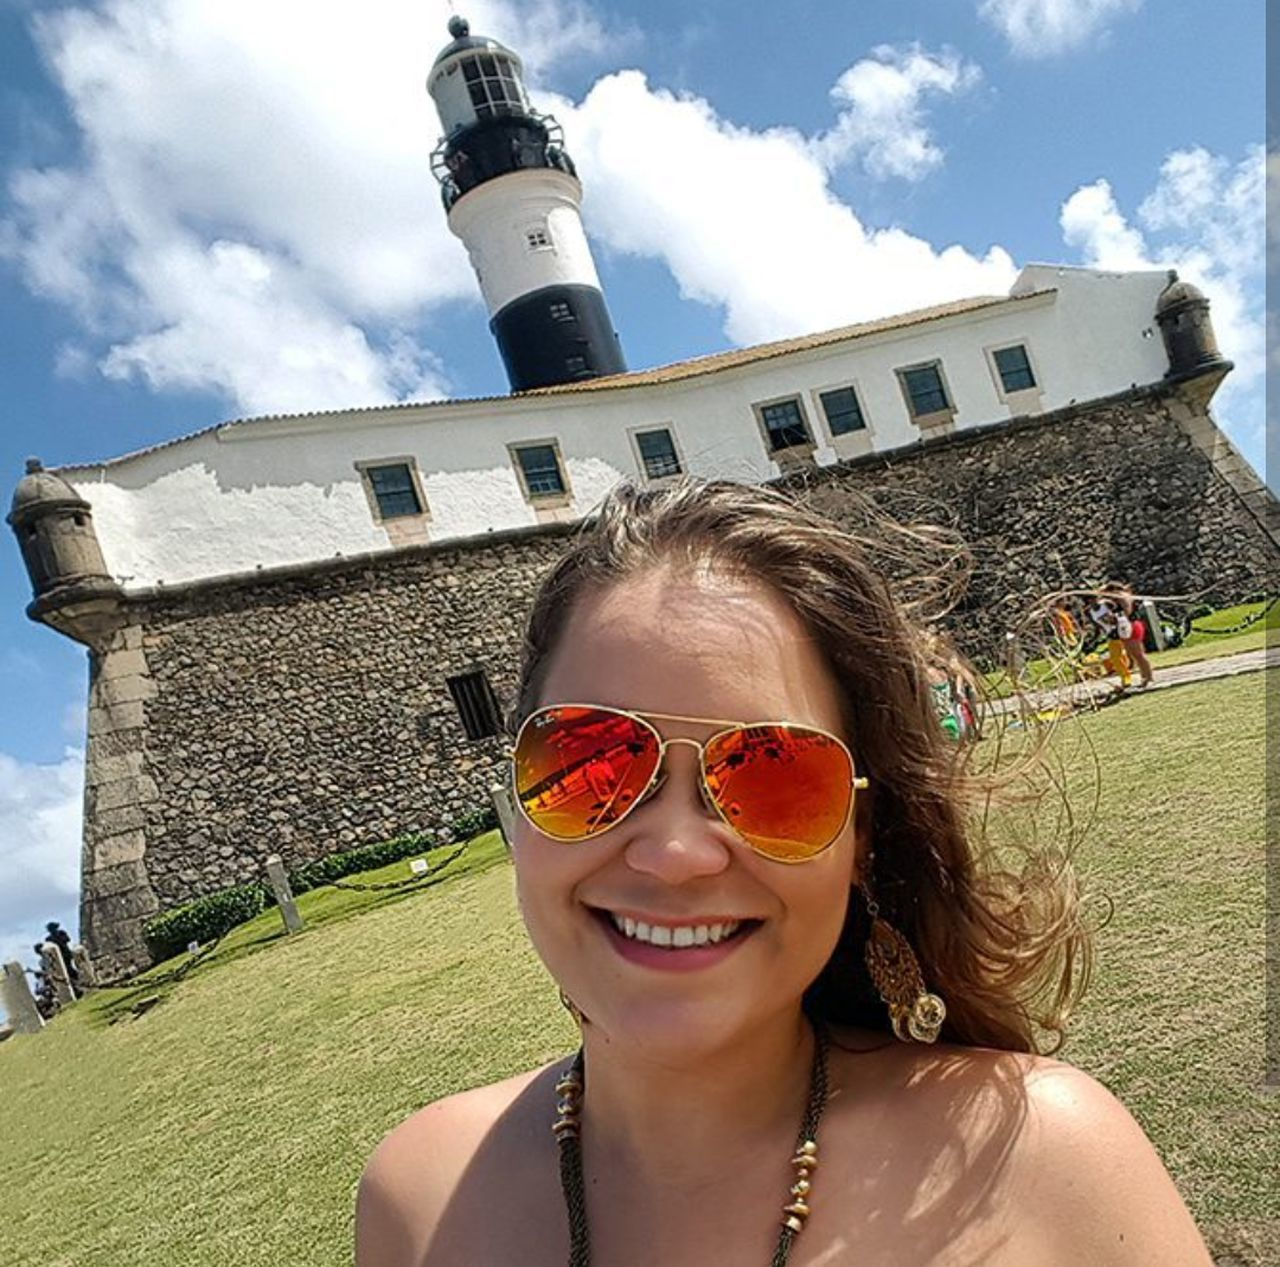 sunglasses, architecture, sky, building exterior, smiling, built structure, looking at camera, portrait, cloud - sky, outdoors, real people, leisure activity, day, happiness, vacations, one person, cheerful, sunlight, travel destinations, young adult, grass, lifestyles, young women, nature, adult, people